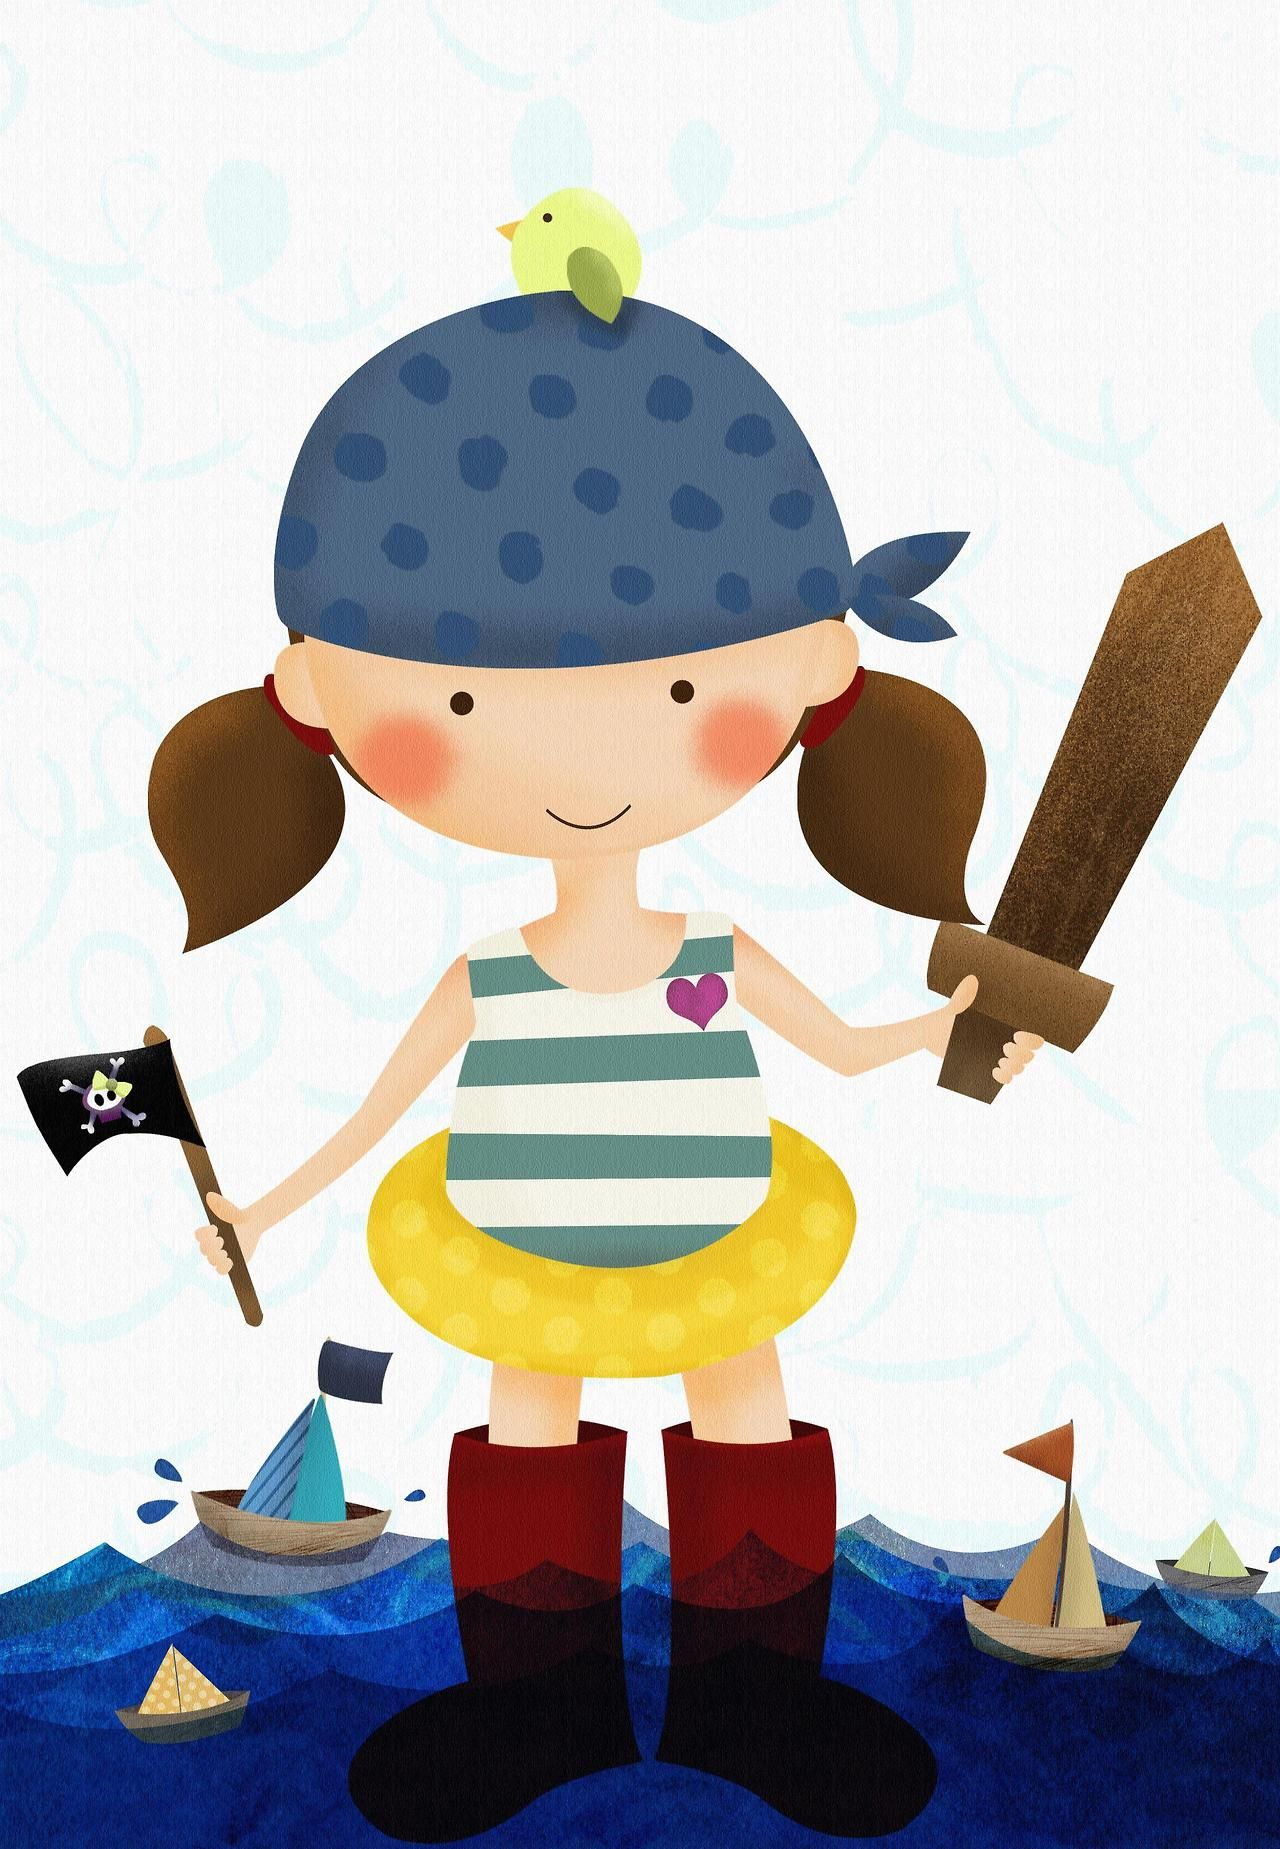 Pirate play date by Mabel Garcia